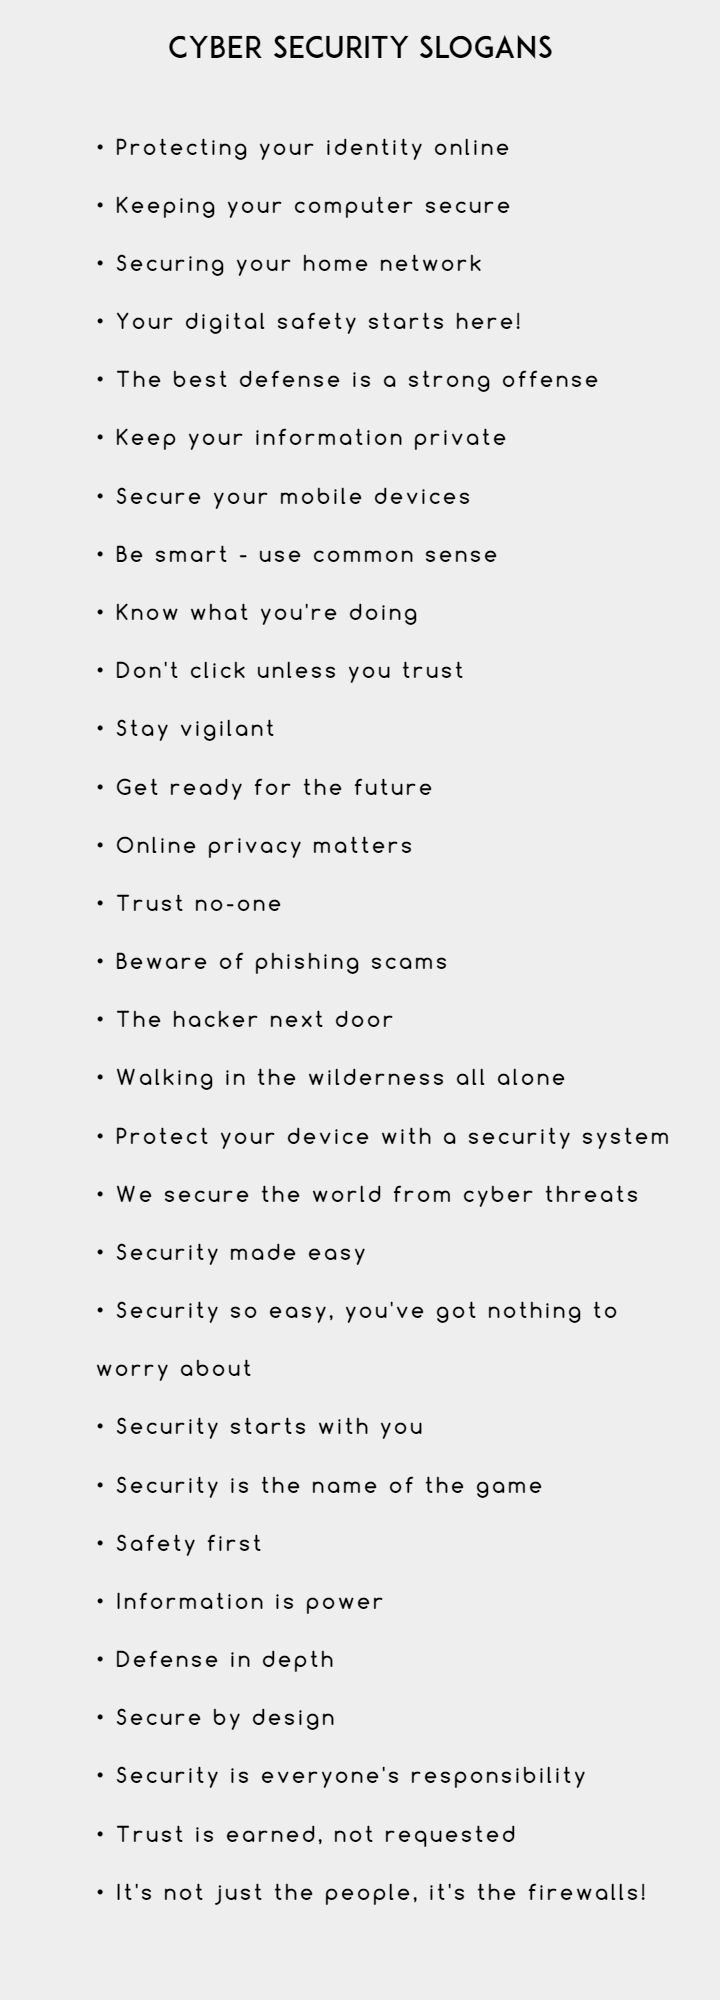 Creative Cyber Security Slogans and Taglines